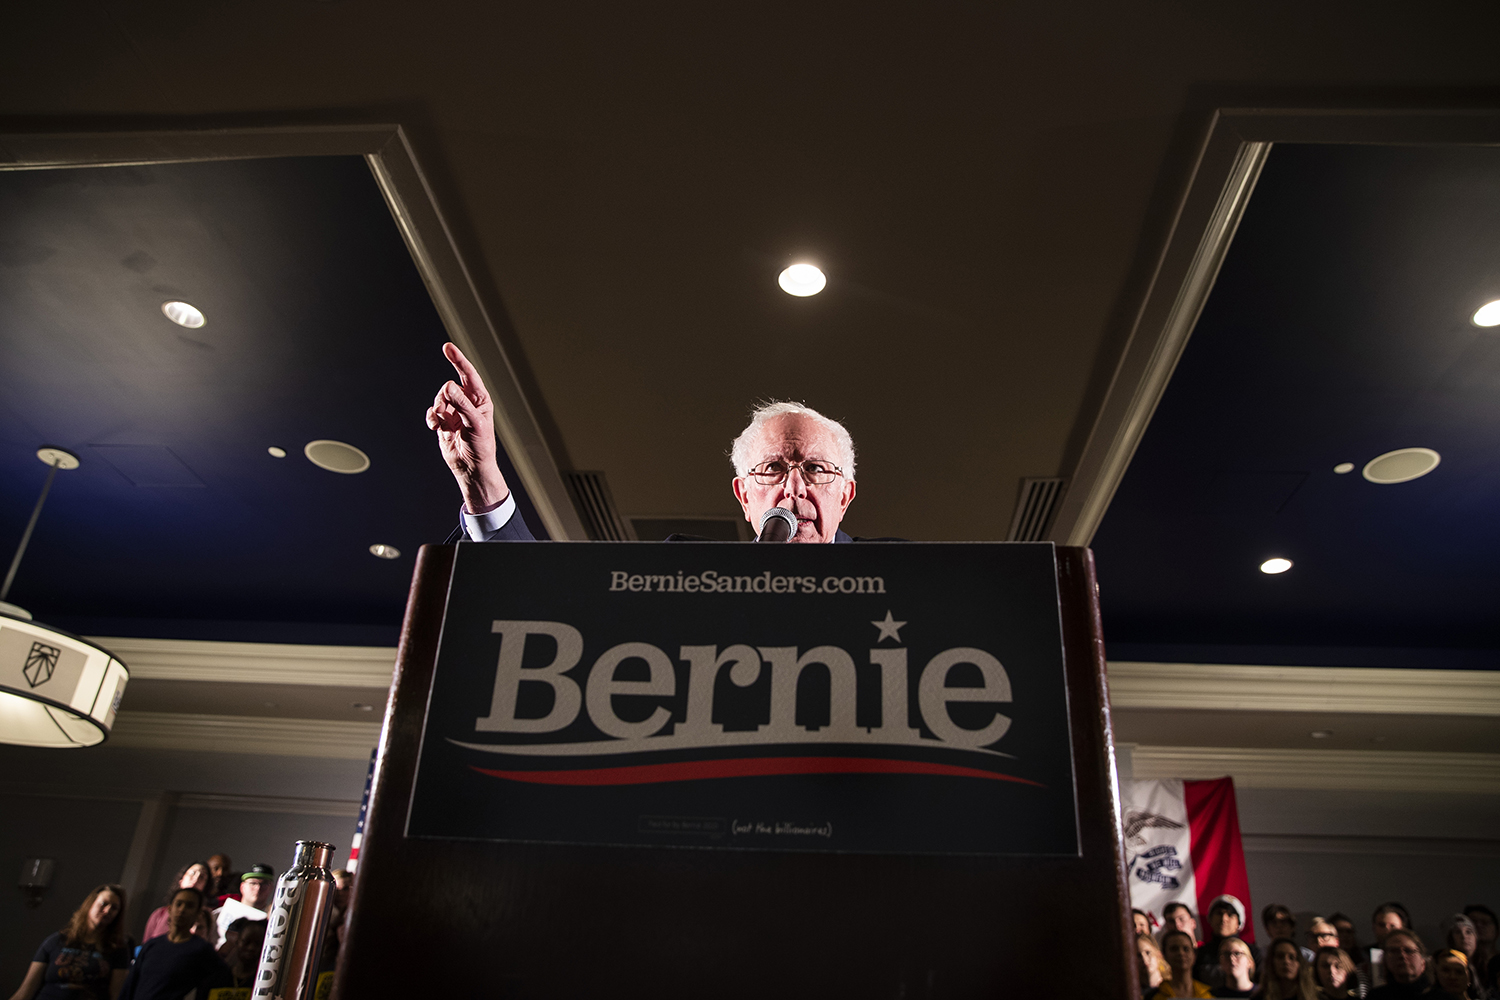 Sen. Bernie Sanders, I-.Vt., speaks during the Iowa City Climate Rally at the Graduate hotel on Jan. 12. Sanders discussed his climate policies, the impact of climate change, the Green New Deal, and the dangers of climate inaction in the government.